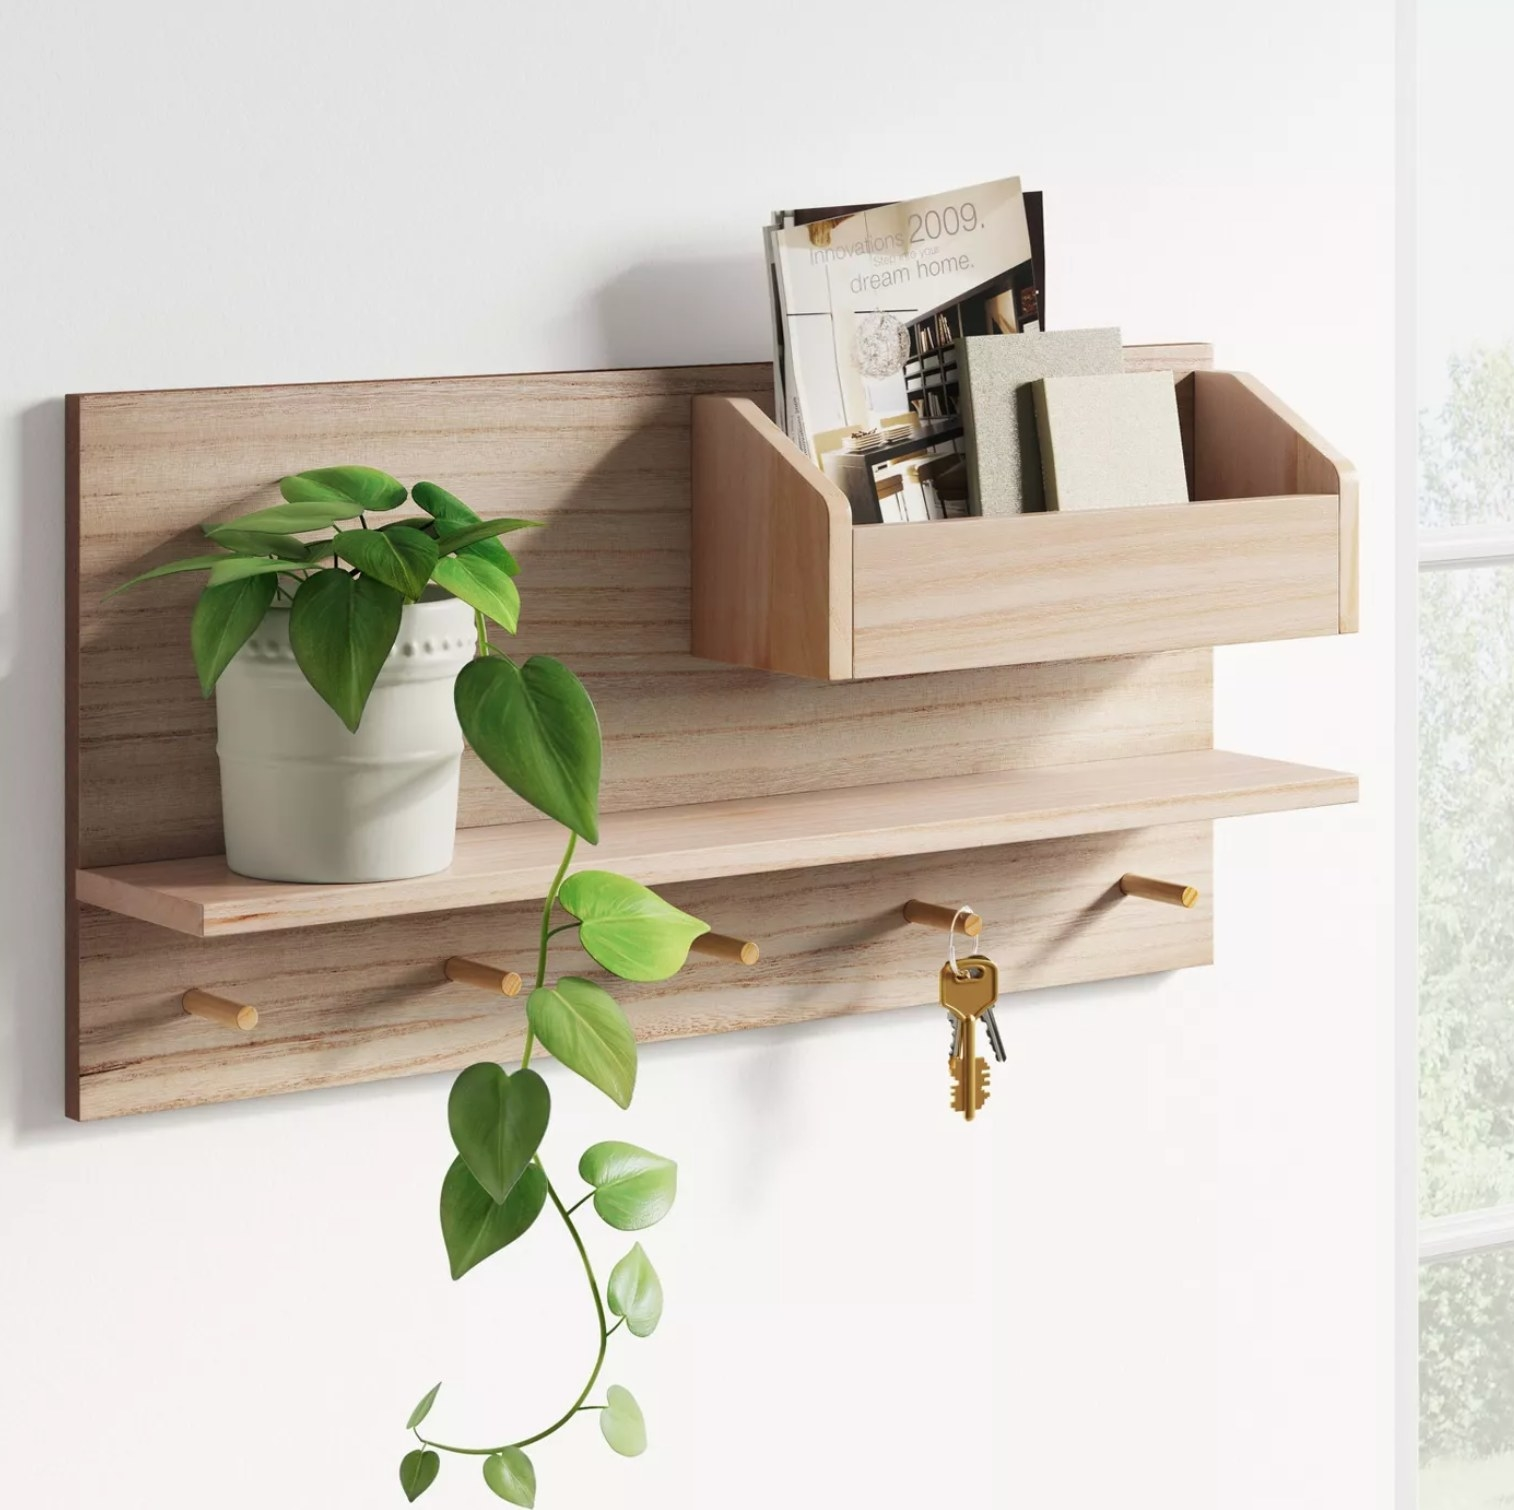 The organizer with keys, a plant, and books in an entryway